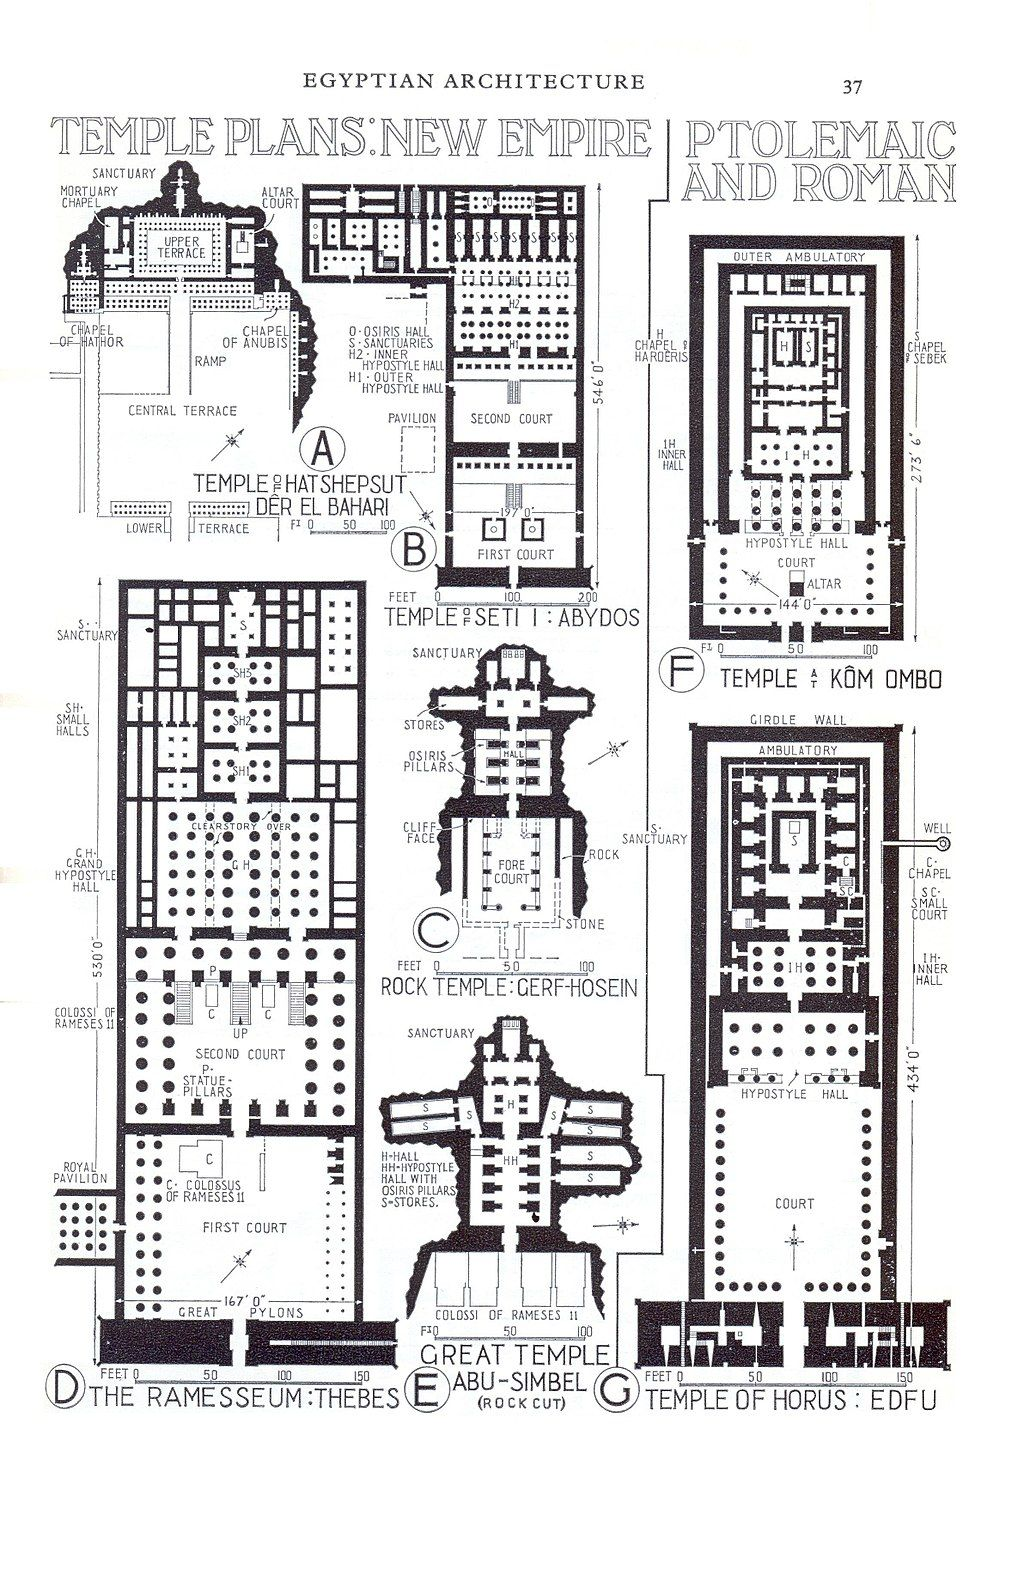 Https Upload Wikimedia Org Wikipedia Commons Thumb 4 42 Temple Plans New Empire Ptolemaic And Roman 37 Jpg 1024px Temple Plans New Empire Arquitectura